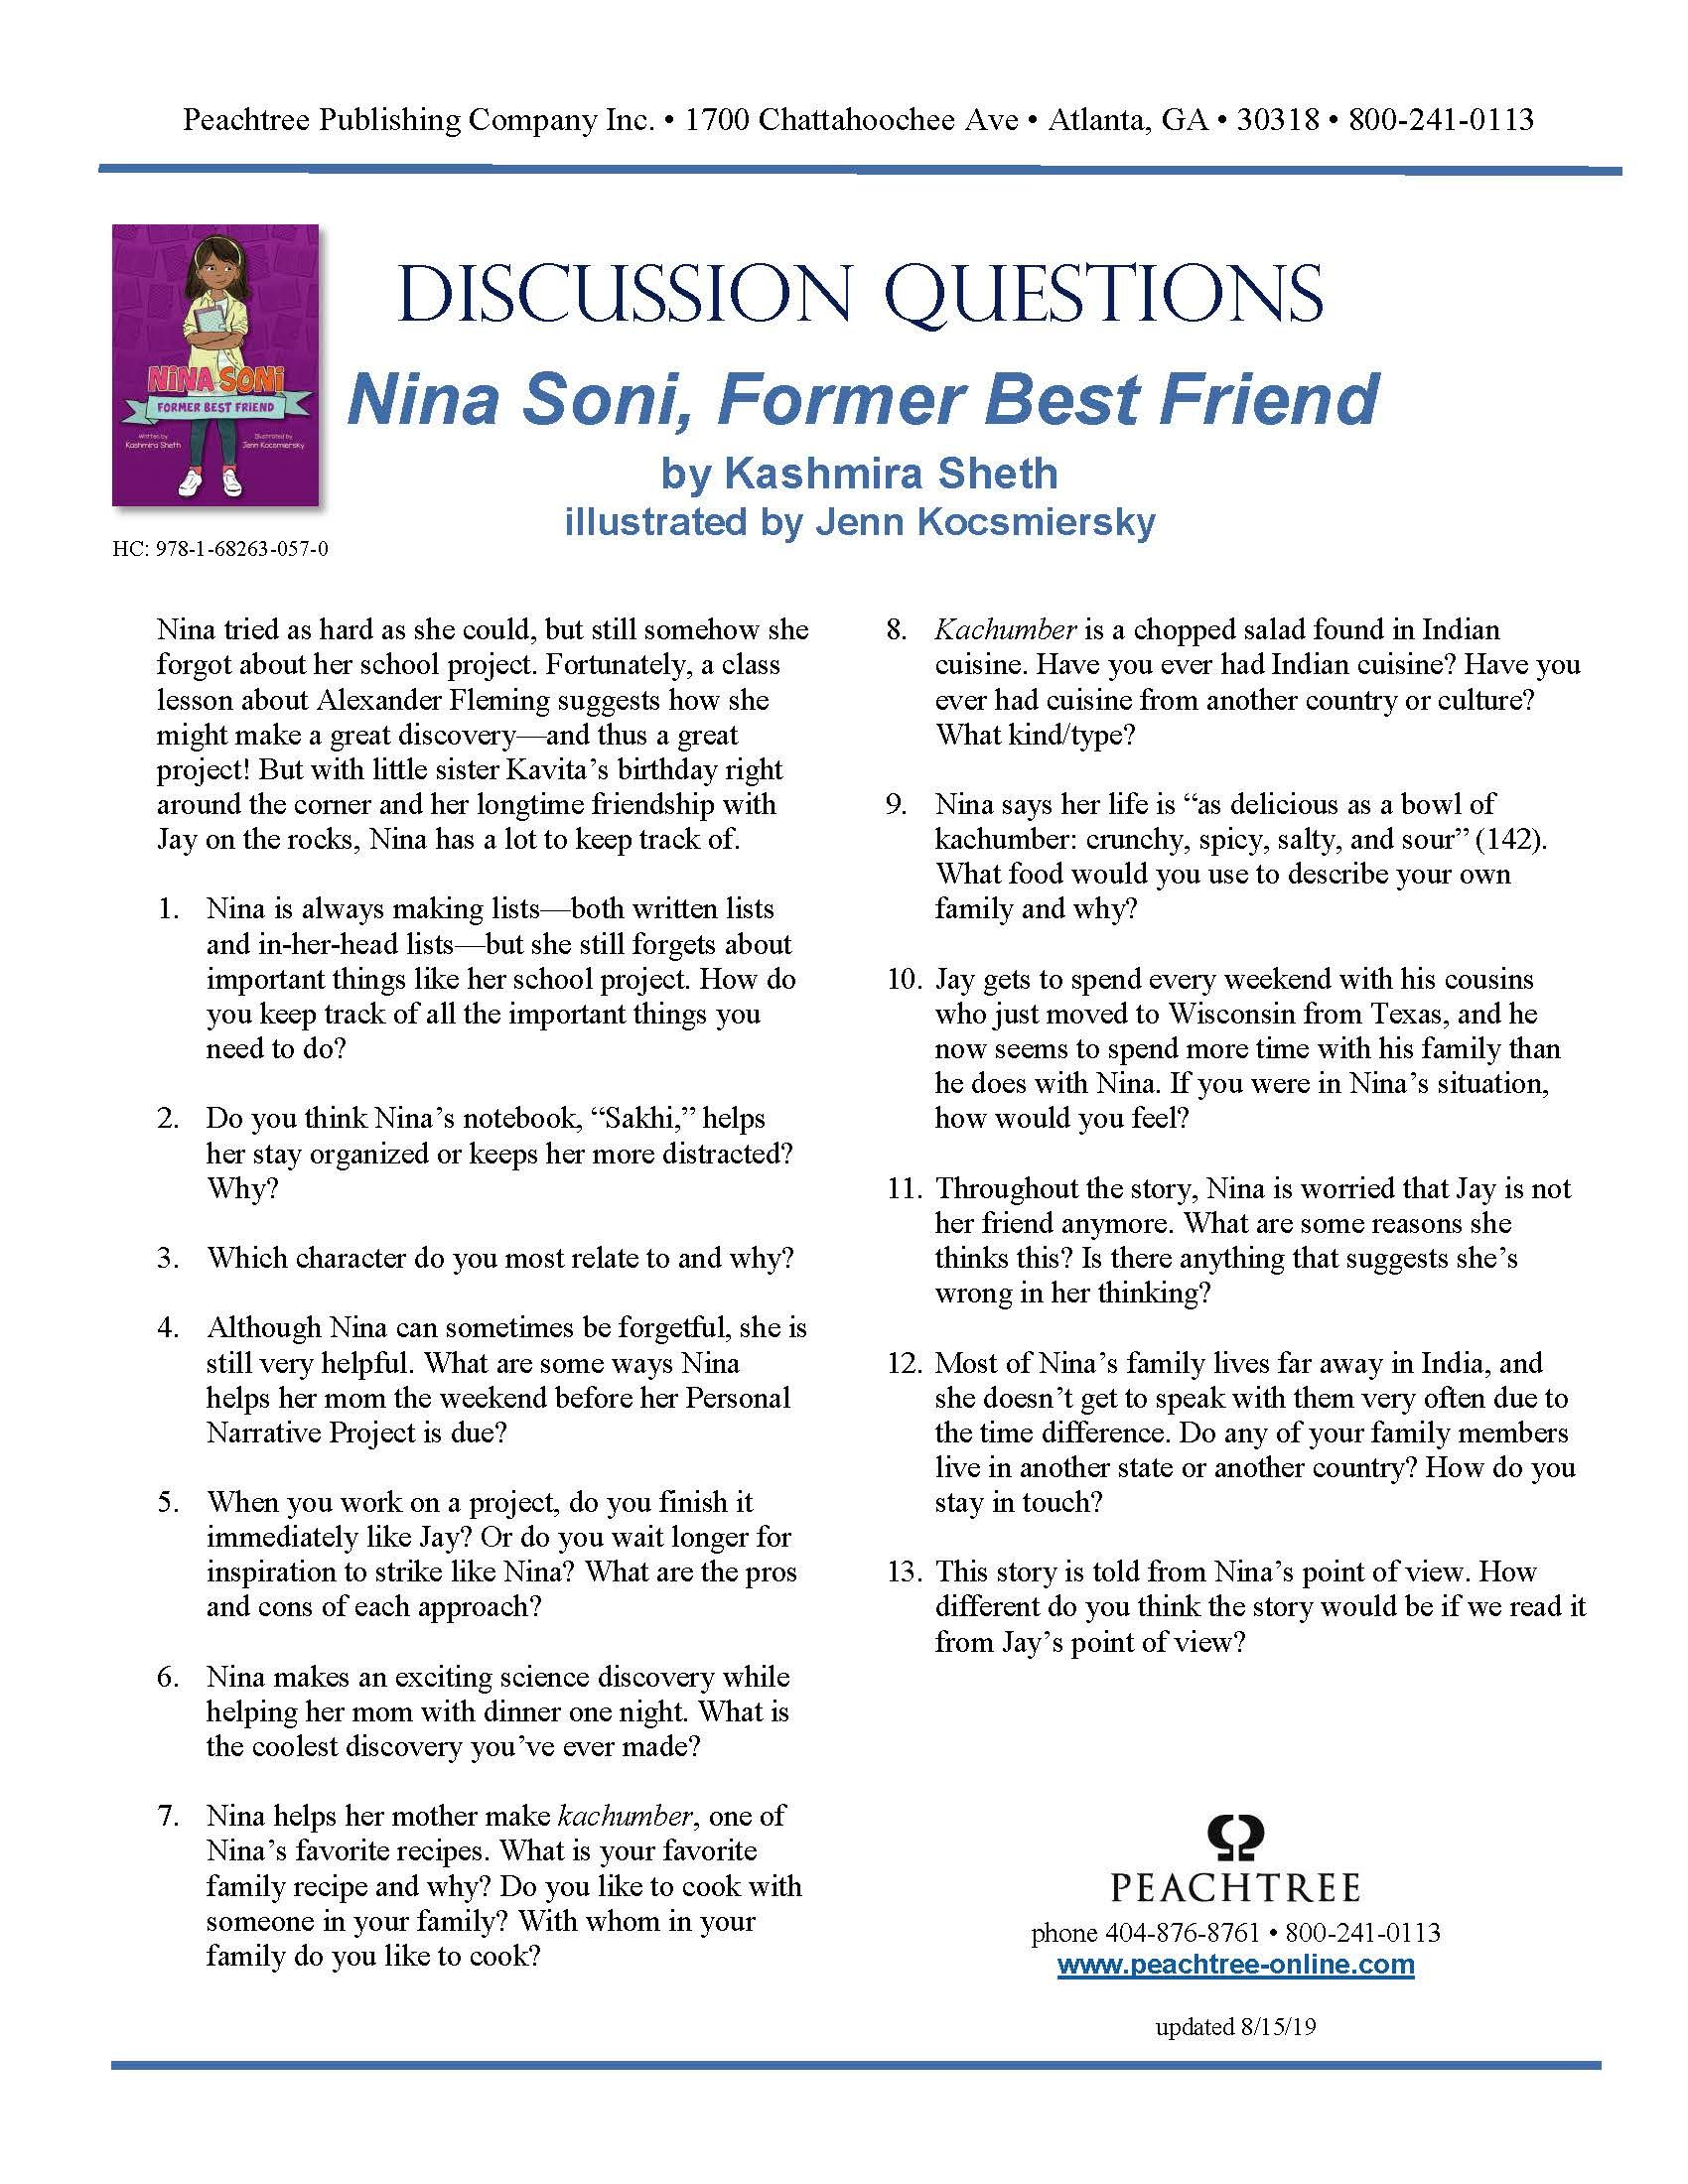 Free Educator Resource Discussion Guide For Nina Soni Former Best Friend Discussion Guide Teacher Guides Education